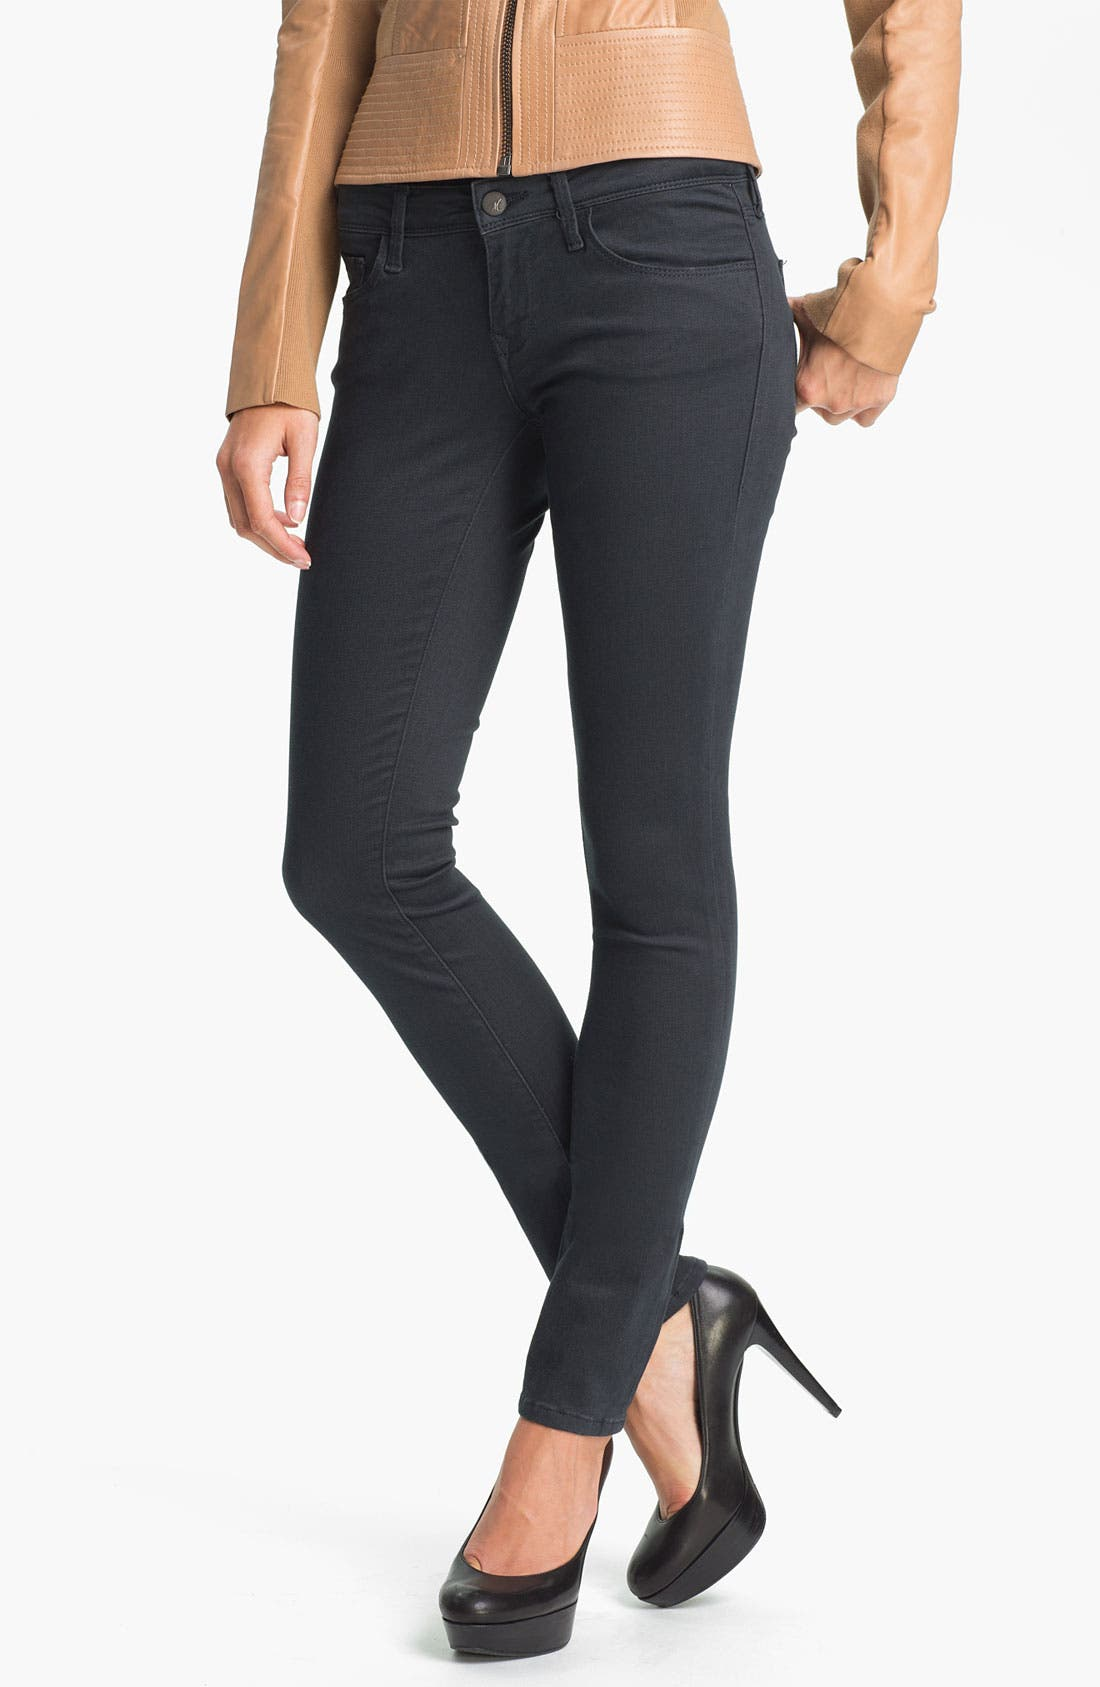 Alternate Image 1 Selected - Mavi Jeans 'Serena' Low Rise Skinny  Jeans (Sueded Granite) (Online Exclusive)